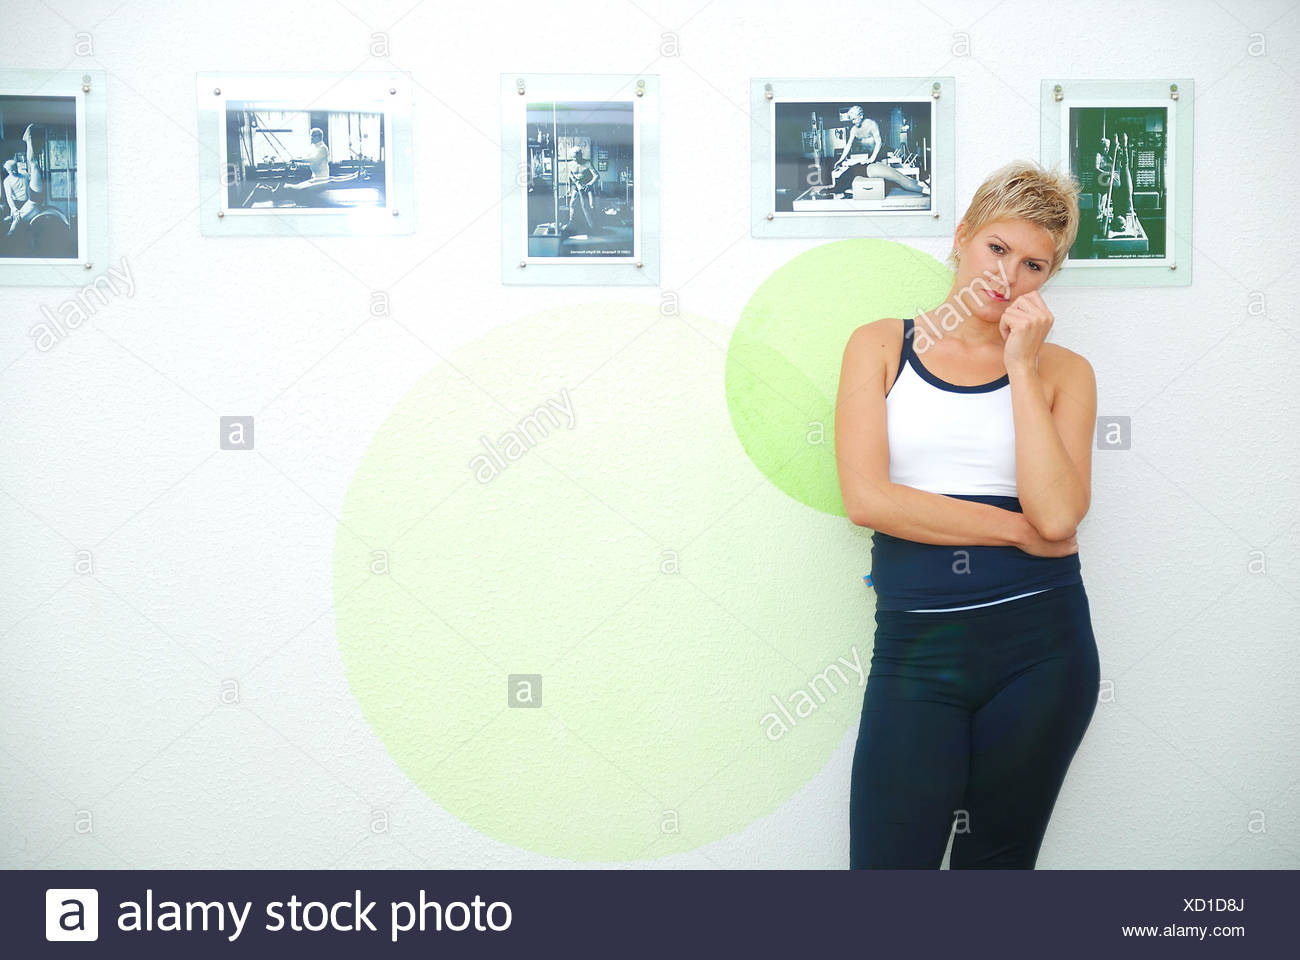 women in a fitness center - Stock Image